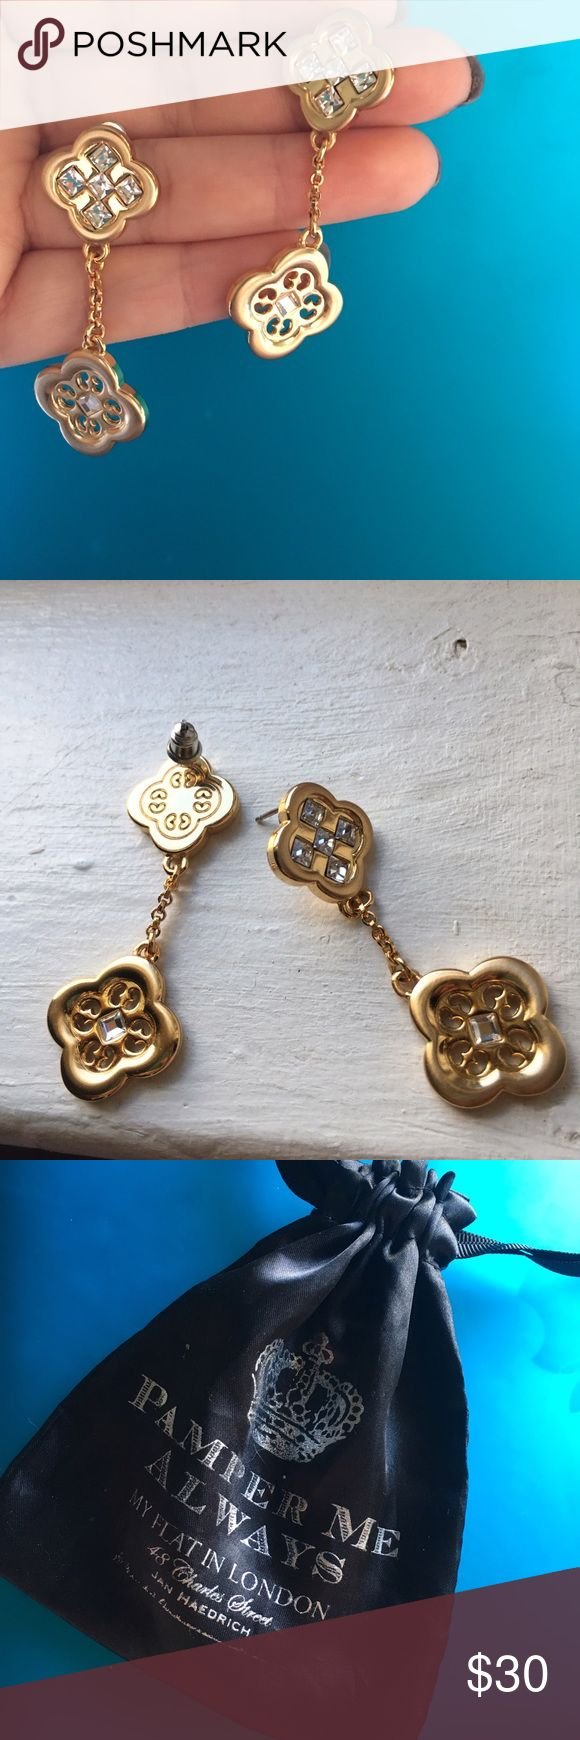 my flat in London Jan haedrich gold dangle earring Pamper Me always my flat in London by Jan haedrich gold dangle earring with ringstone. Never worn. Was a gift   Can do international shipping 😊I'll be happy to answer any questions My Flat in London Jewelry Earrings